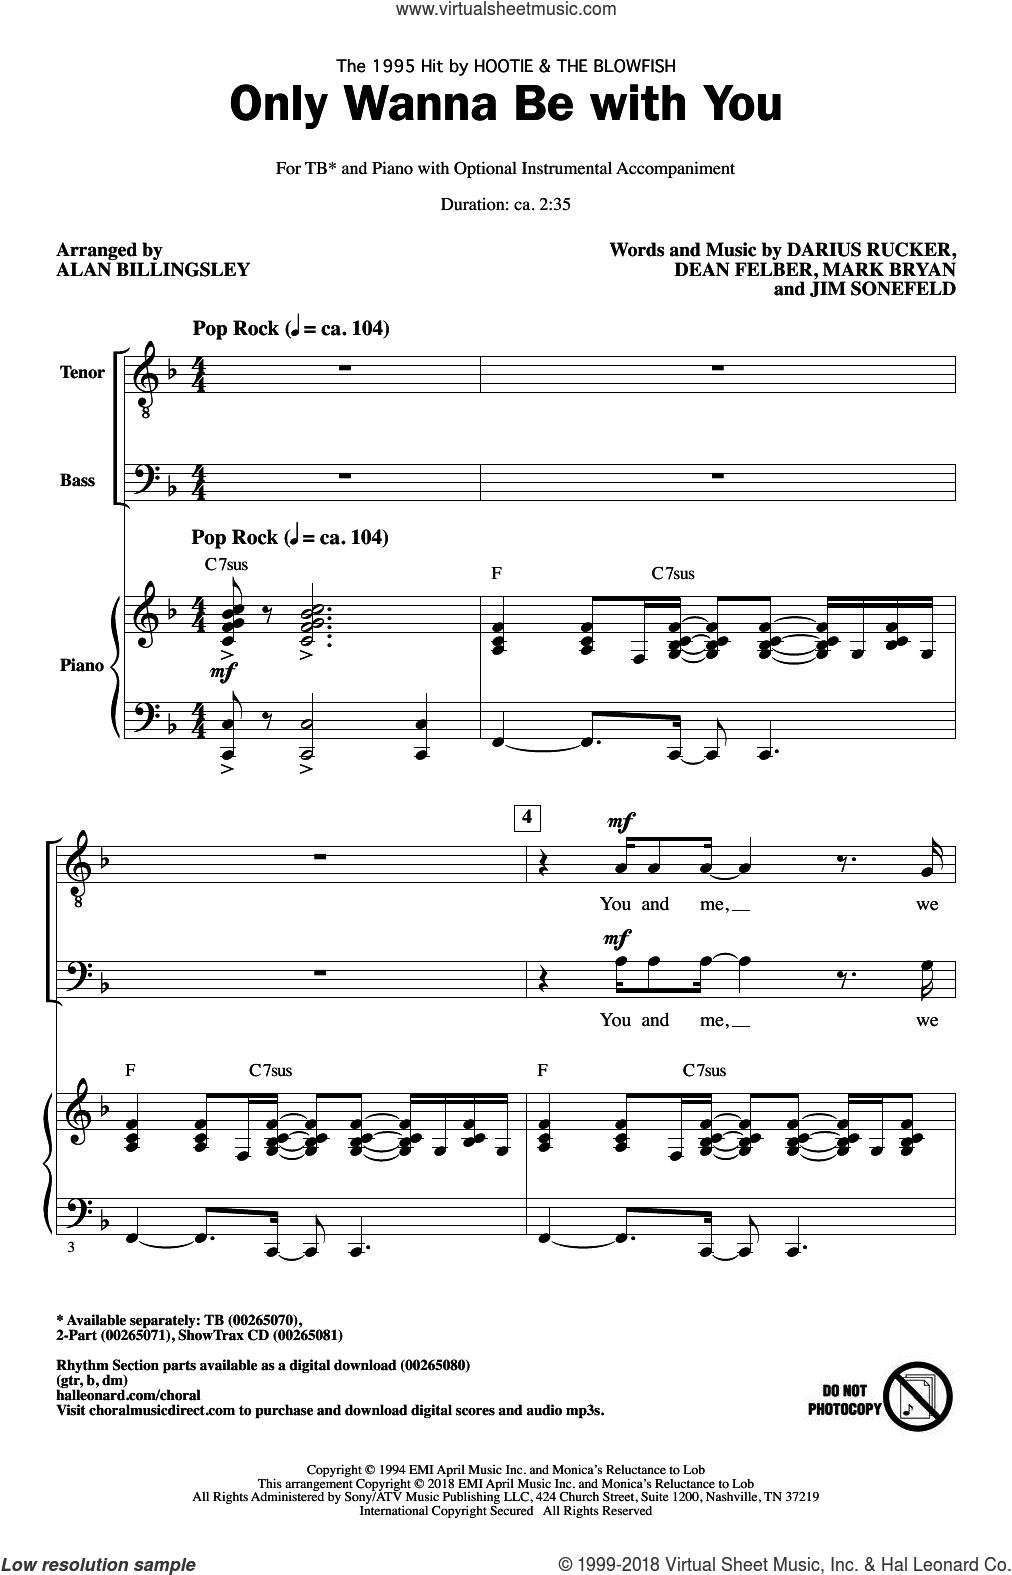 Only Wanna Be With You (arr. Alan Billingsley) sheet music for choir (TB: tenor, bass) by Hootie & The Blowfish, Alan Billingsley, Darius Carlos Rucker, Everett Dean Felber, James George Sonefeld and Mark William Bryan, intermediate skill level